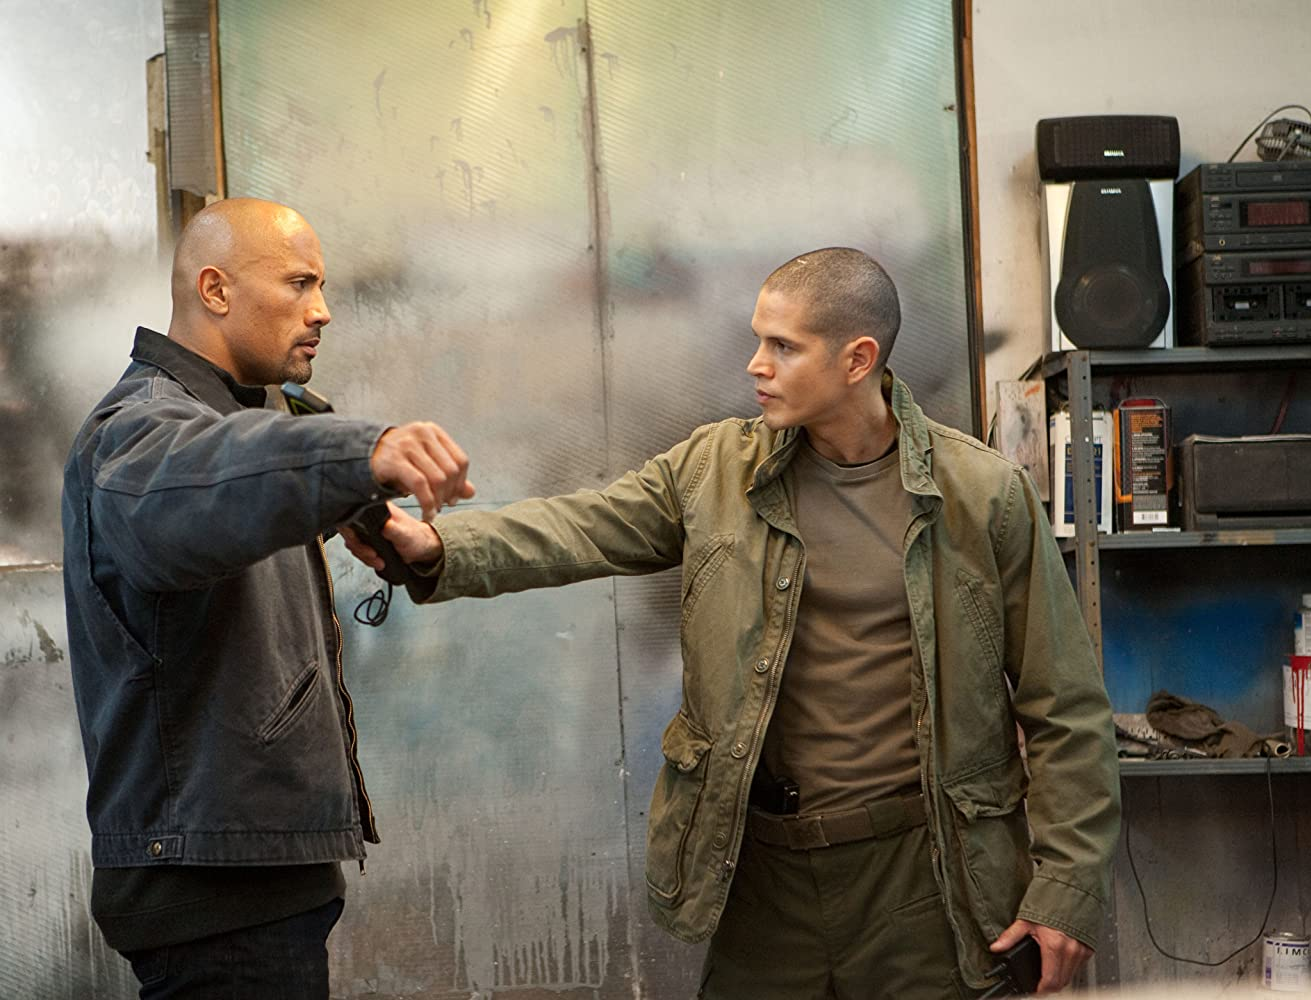 Dwayne Johnson and JD Pardo in Snitch (2013)